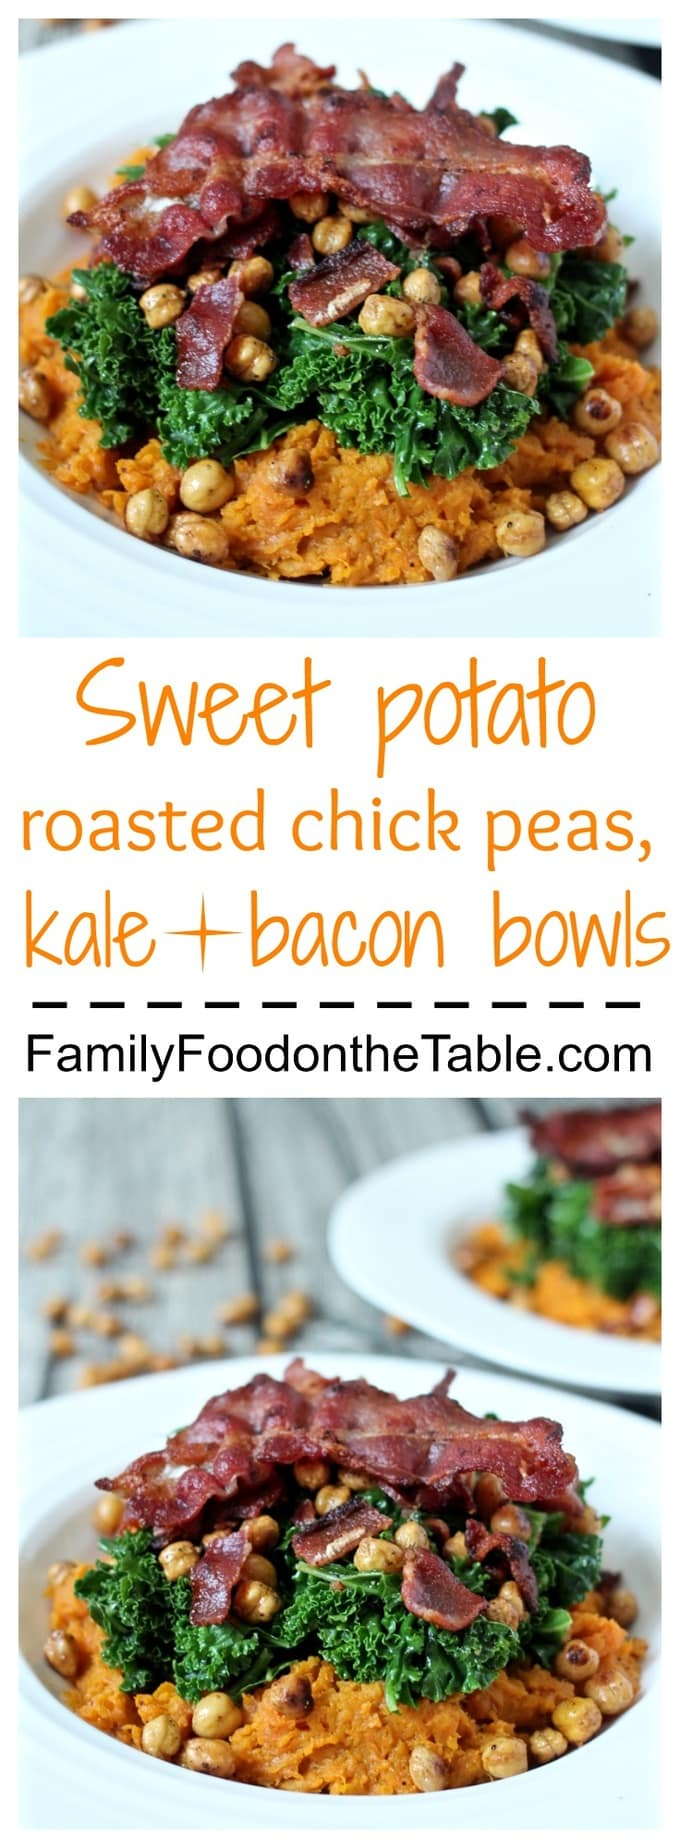 Mashed sweet potatoes topped with sautéed kale, roasted chick peas and crispy bacon!